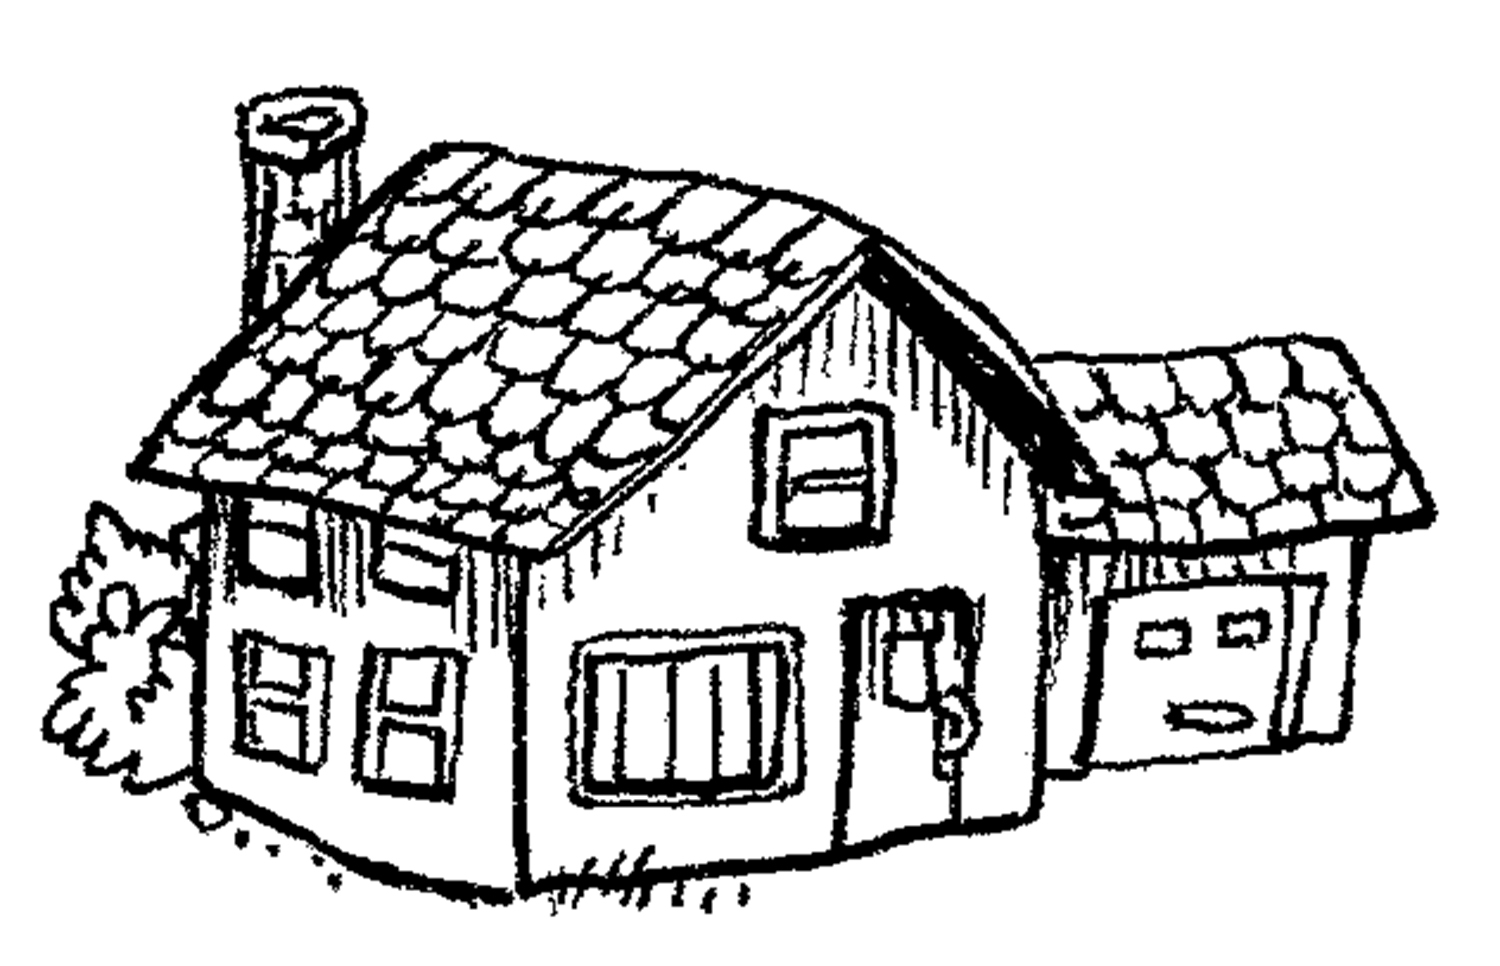 School House Outline - ClipArt Best